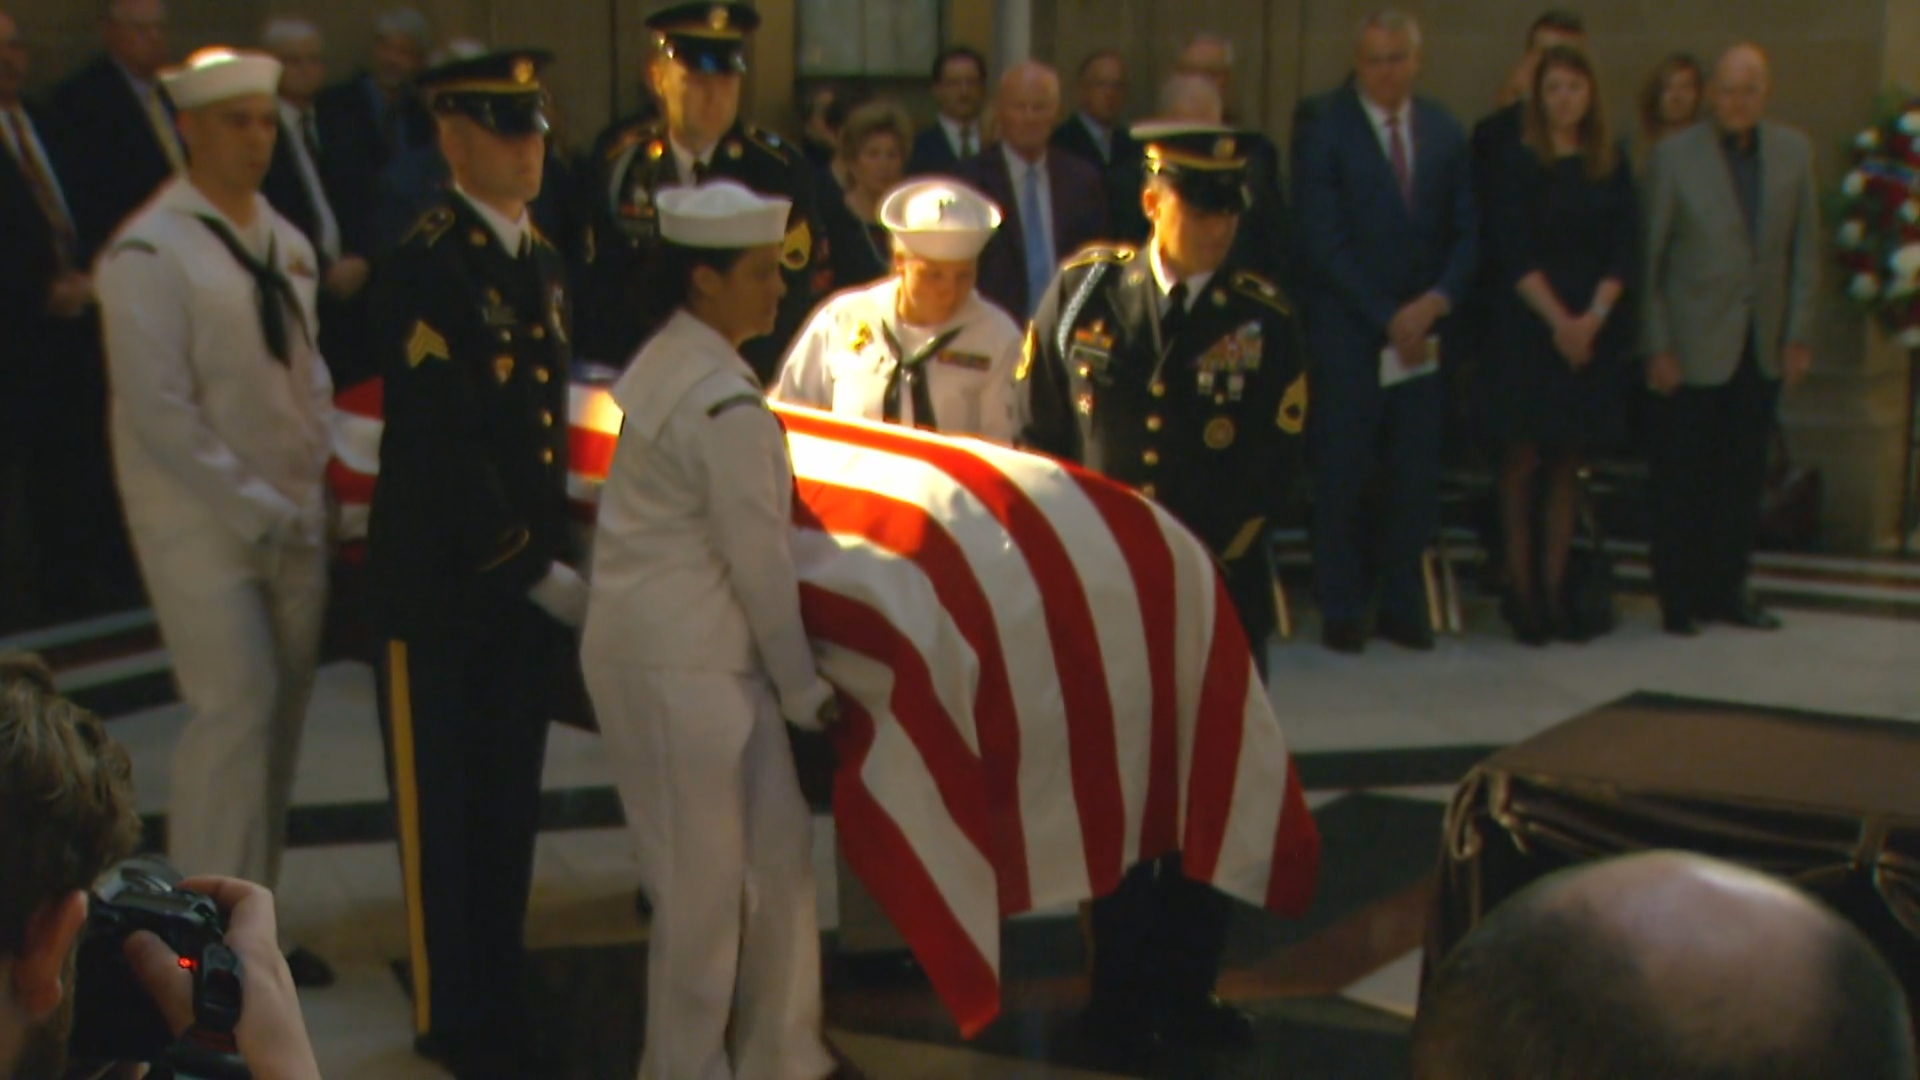 US Sen. Richard Lugar lies in repose in Indiana Statehouse